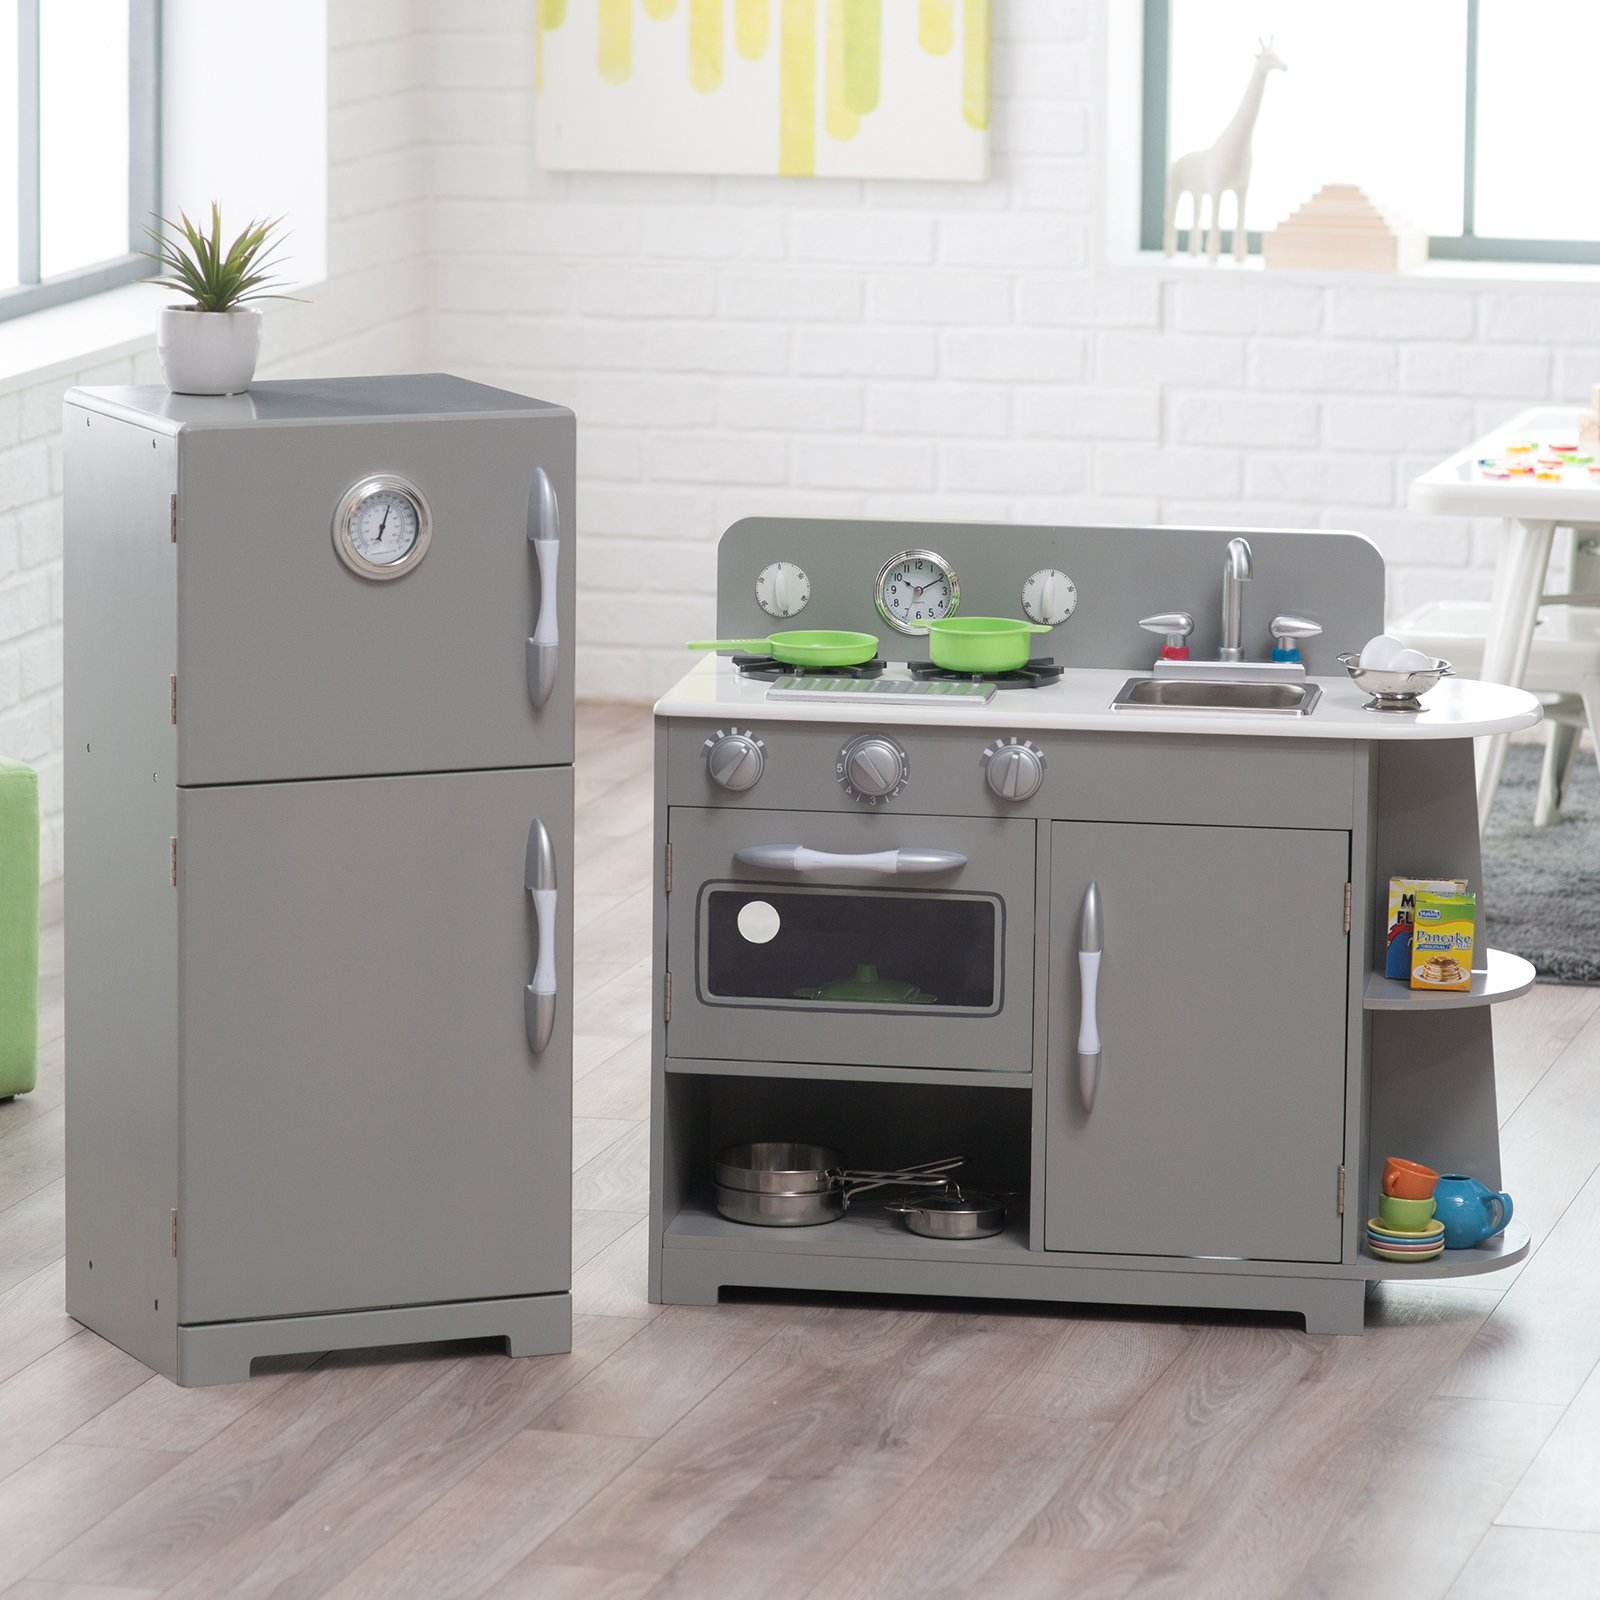 Merveilleux Classic Wooden Play Kitchen Set   Gray   Walmart.com